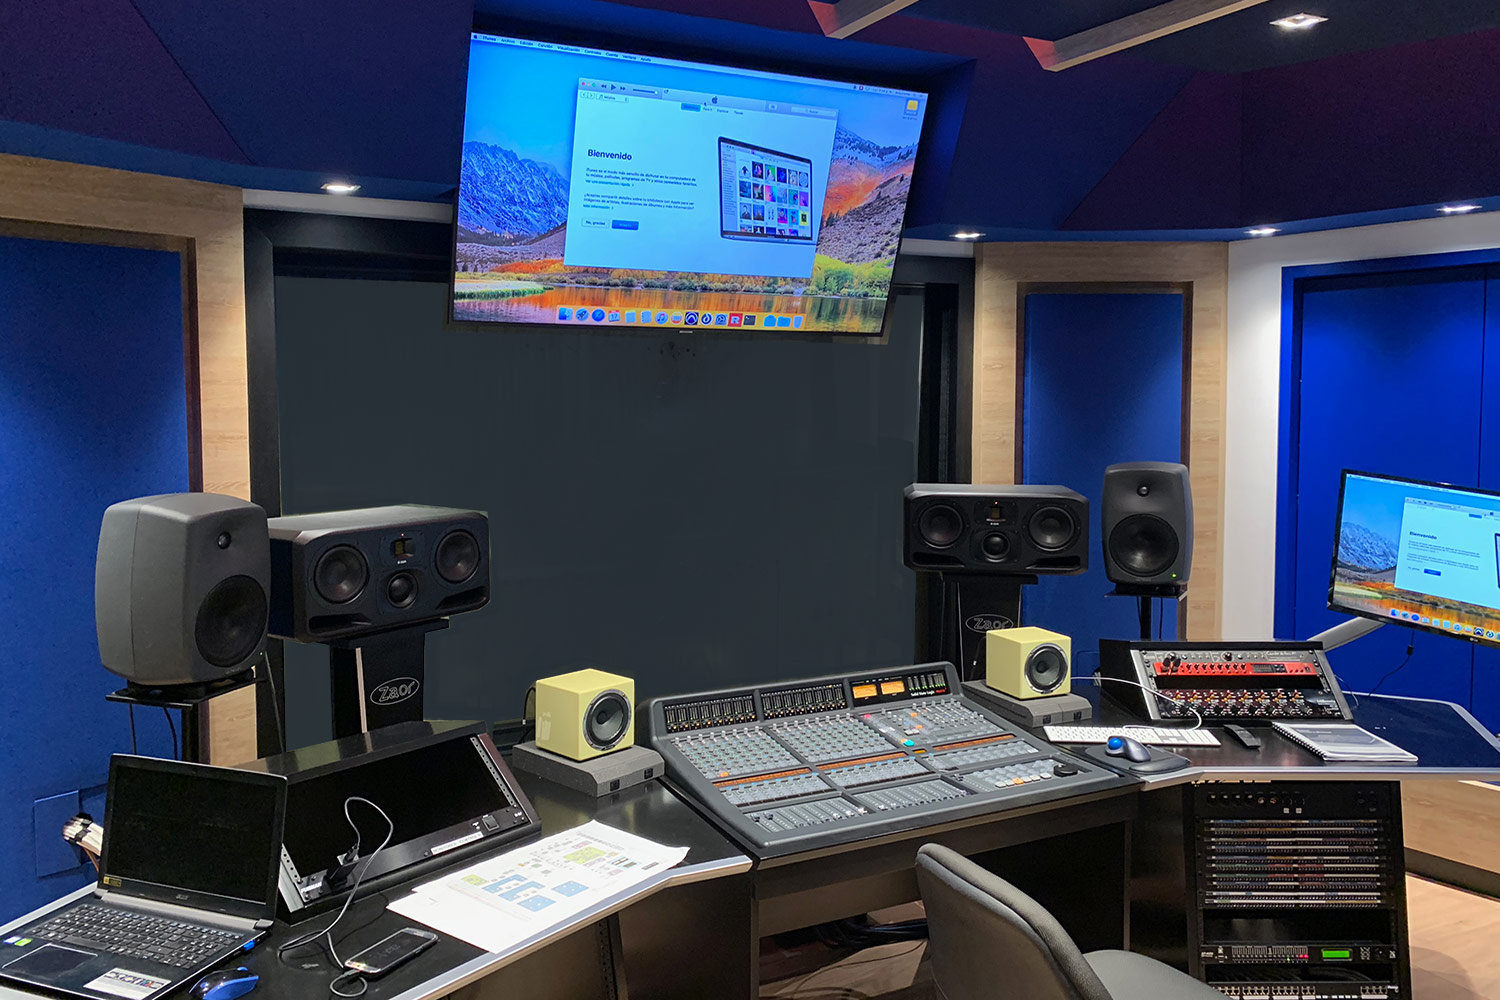 Universidad ICESI in Cali, Colombia commissioned WSDG to design their new music performance, composition and production building with world-class recording studios. Control Room B.